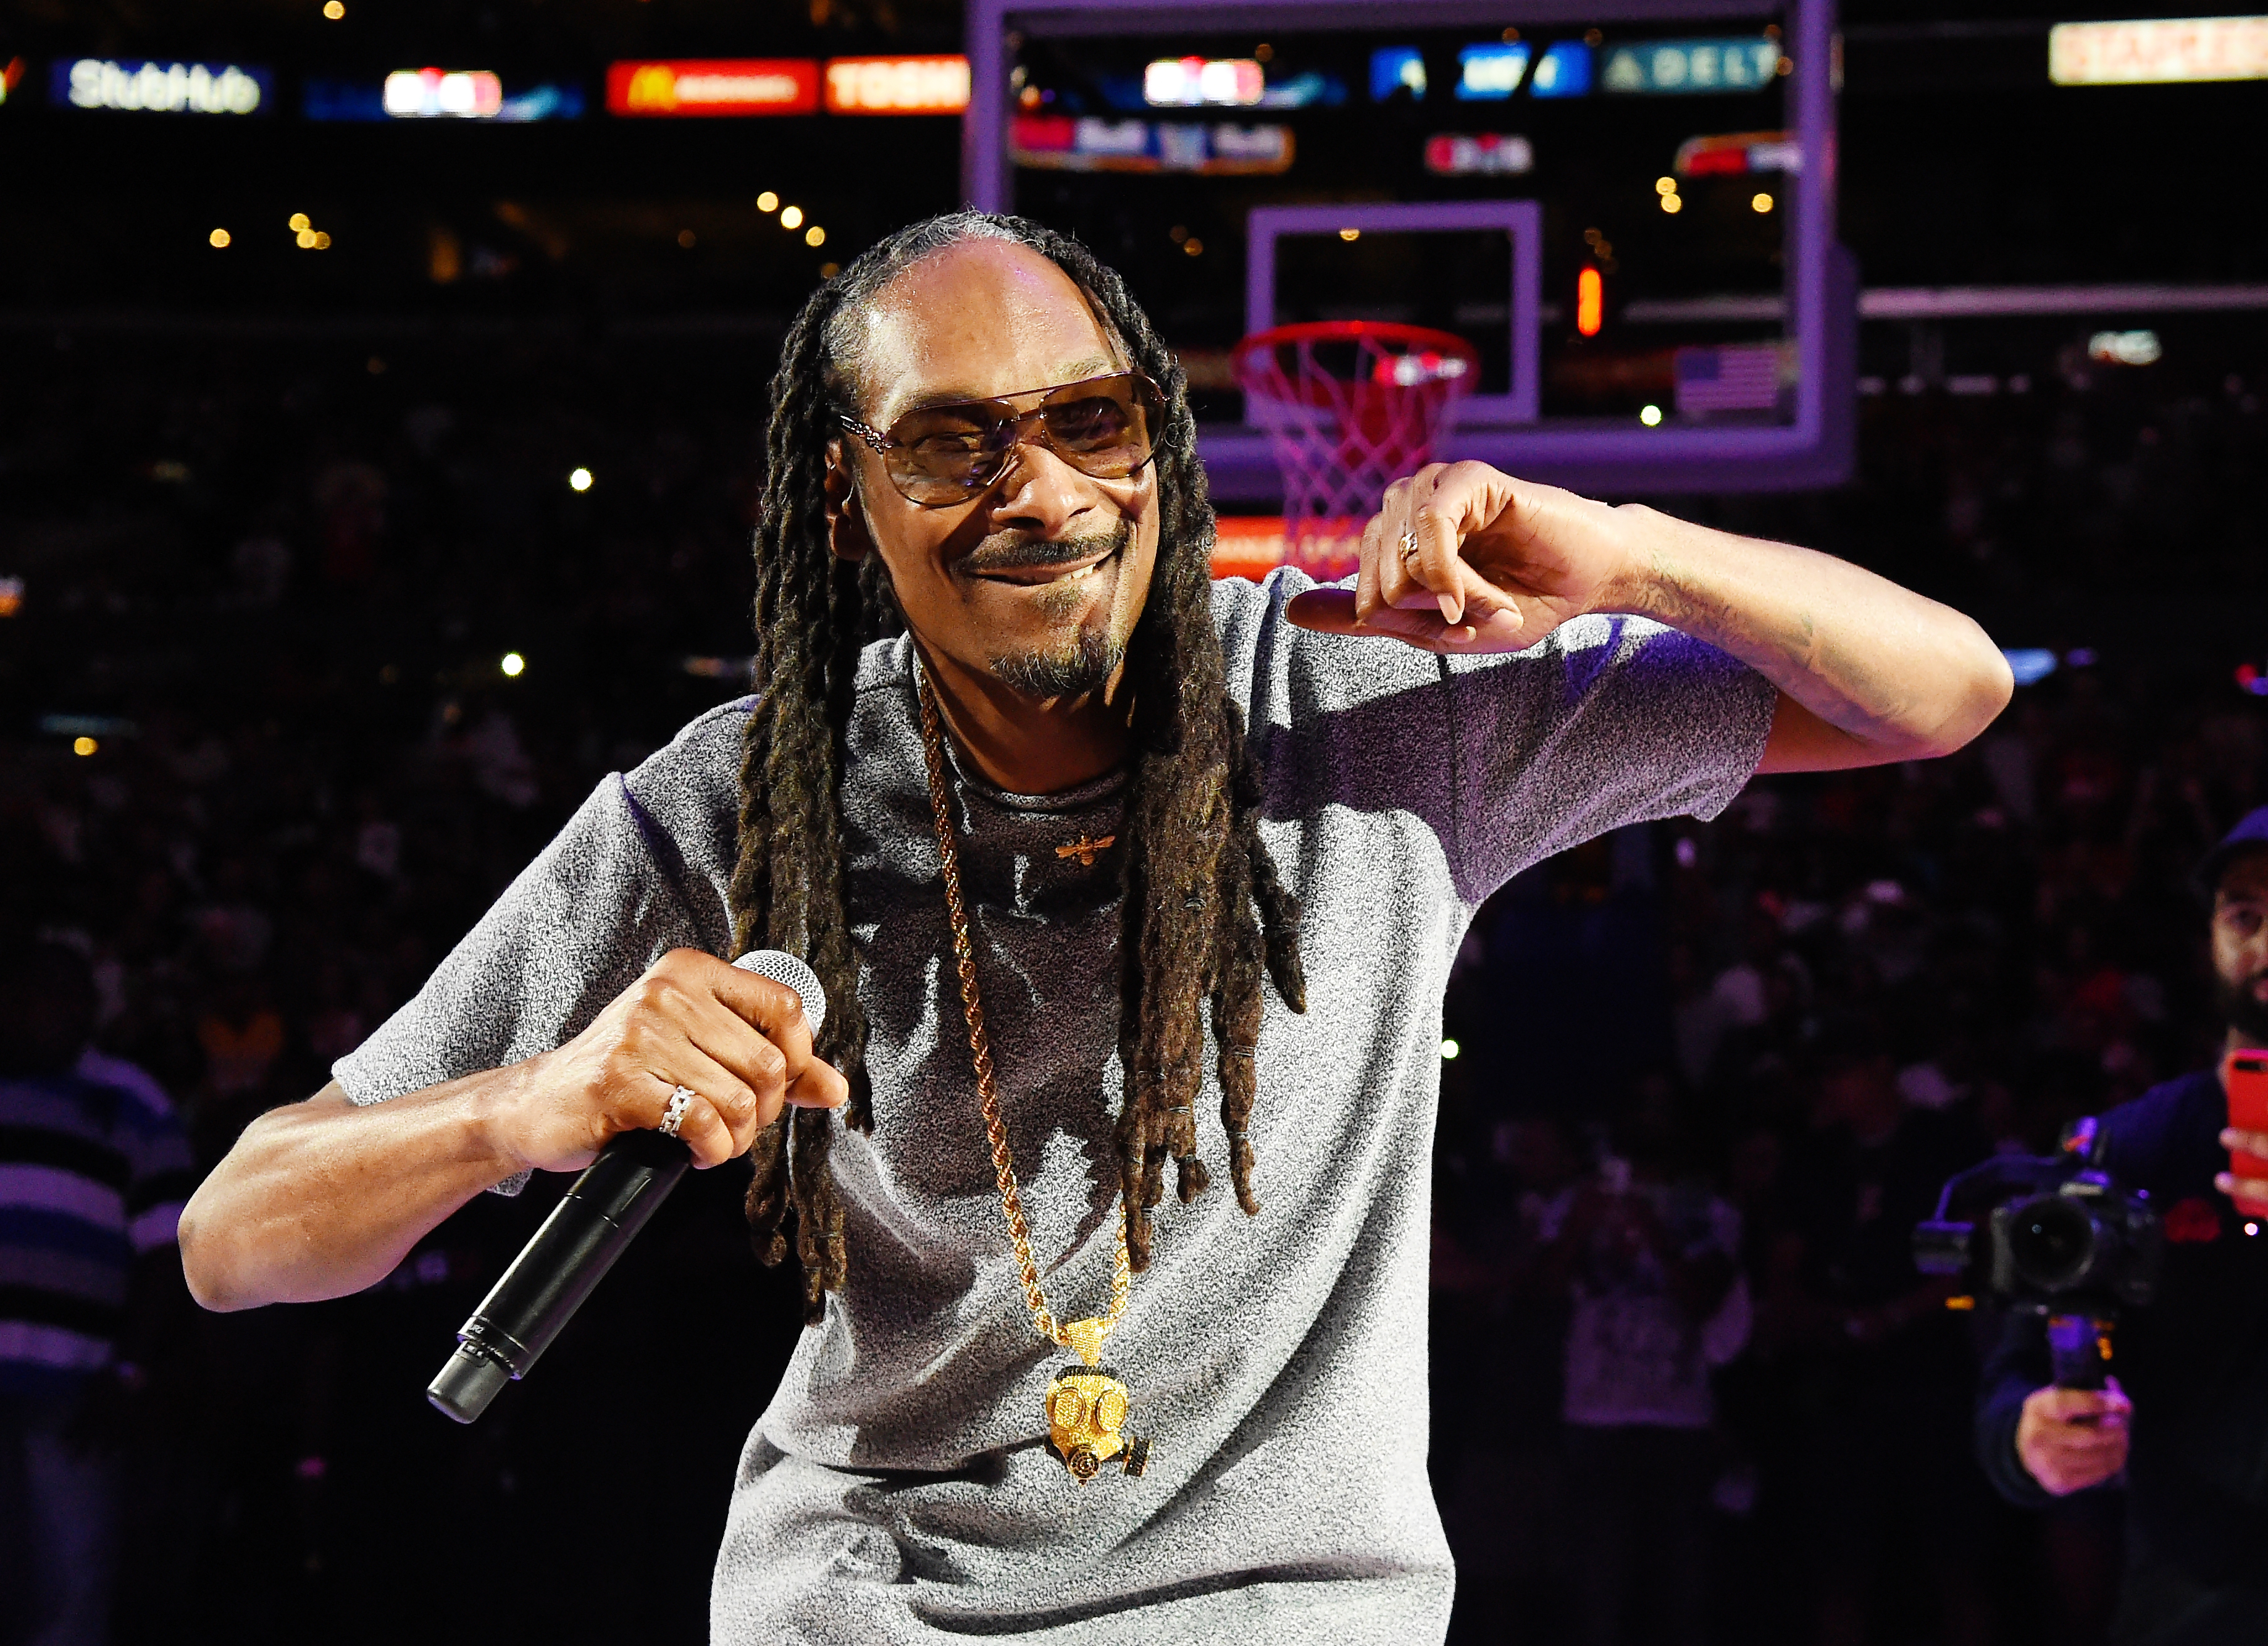 Snoop Dogg Previews New Ep With Make America Crip Again Song Rolling Stone